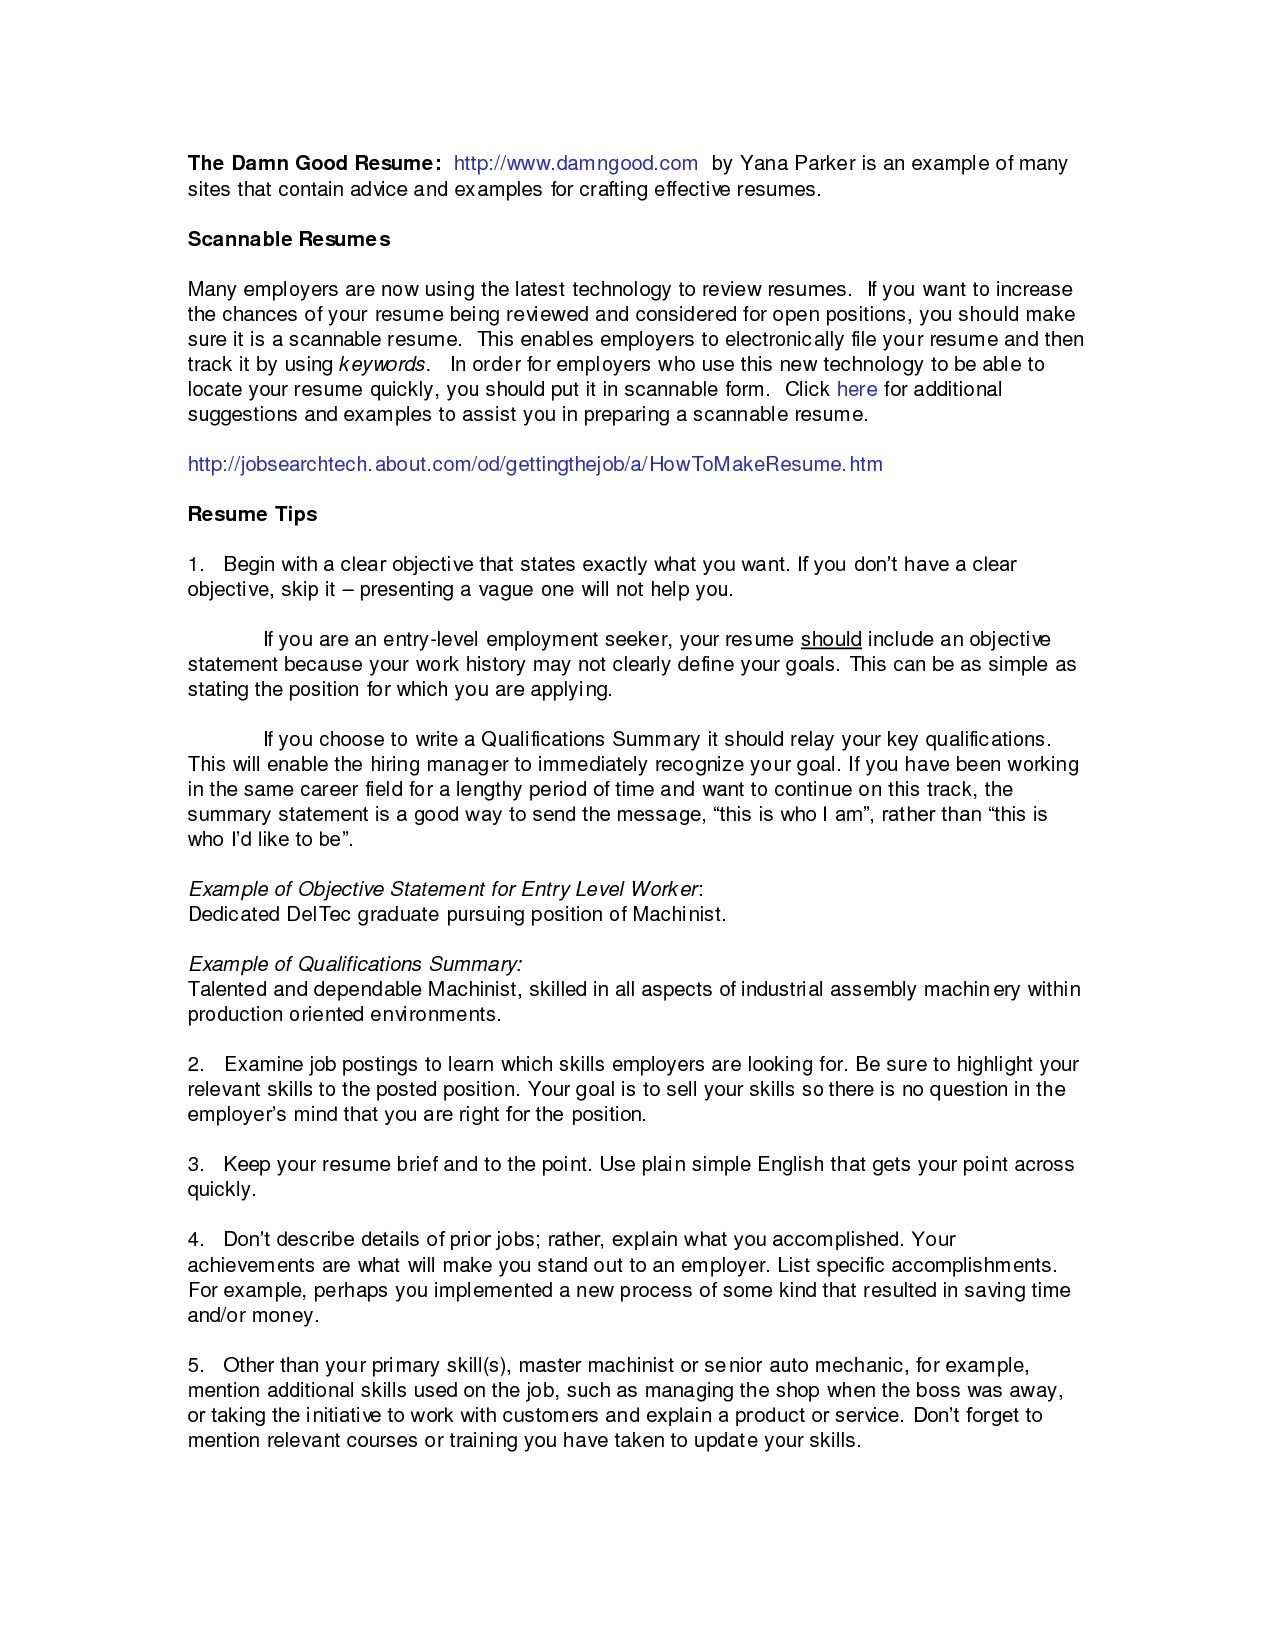 14 Professional Summary for Resume No Experience Samples | by Diocorrane |  Sep, 2020 | Medium